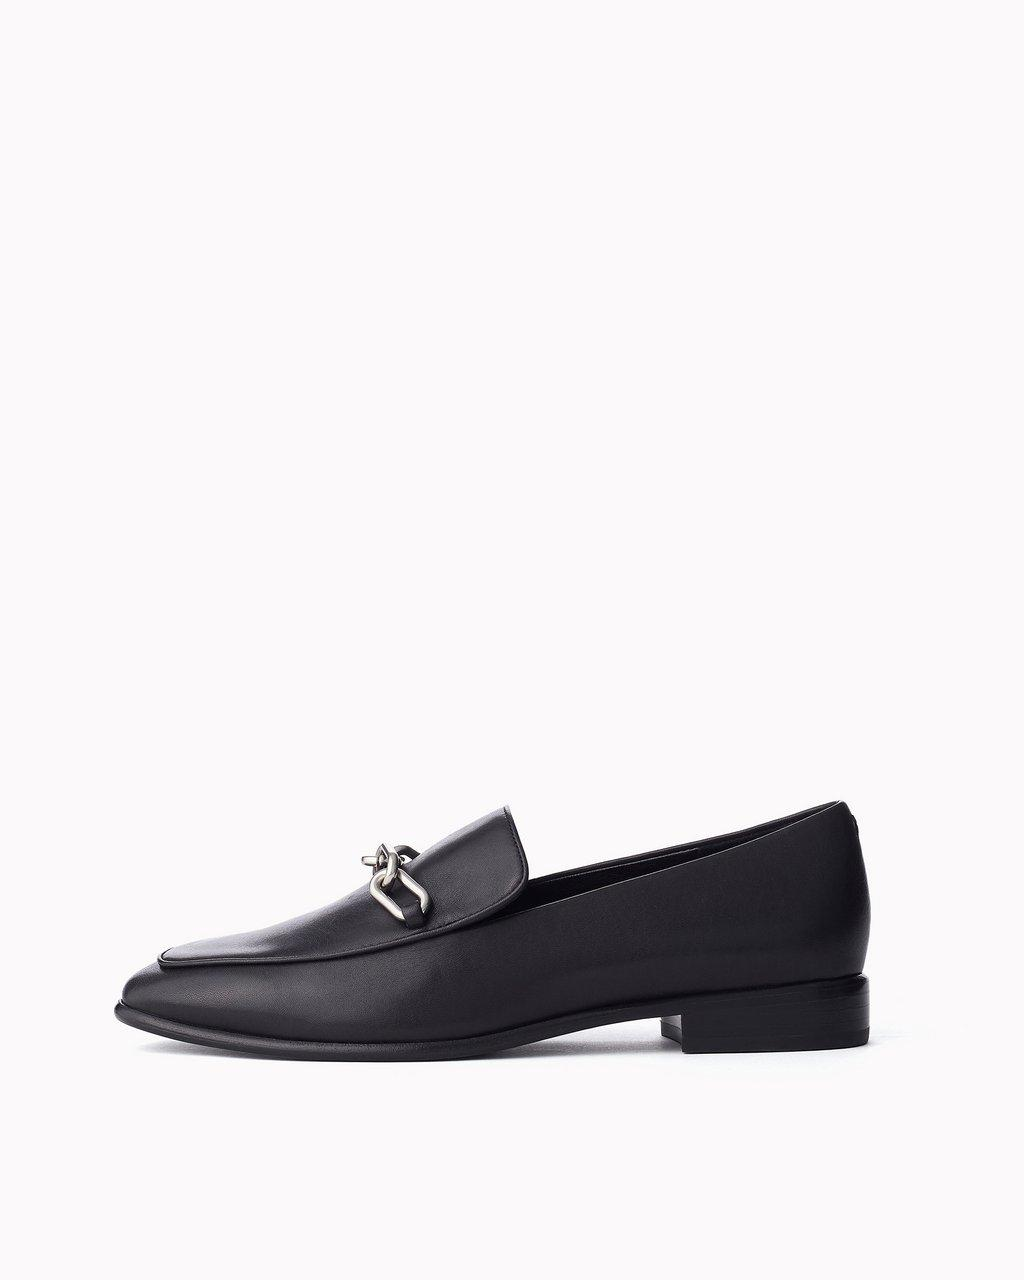 ASLEN LOAFER